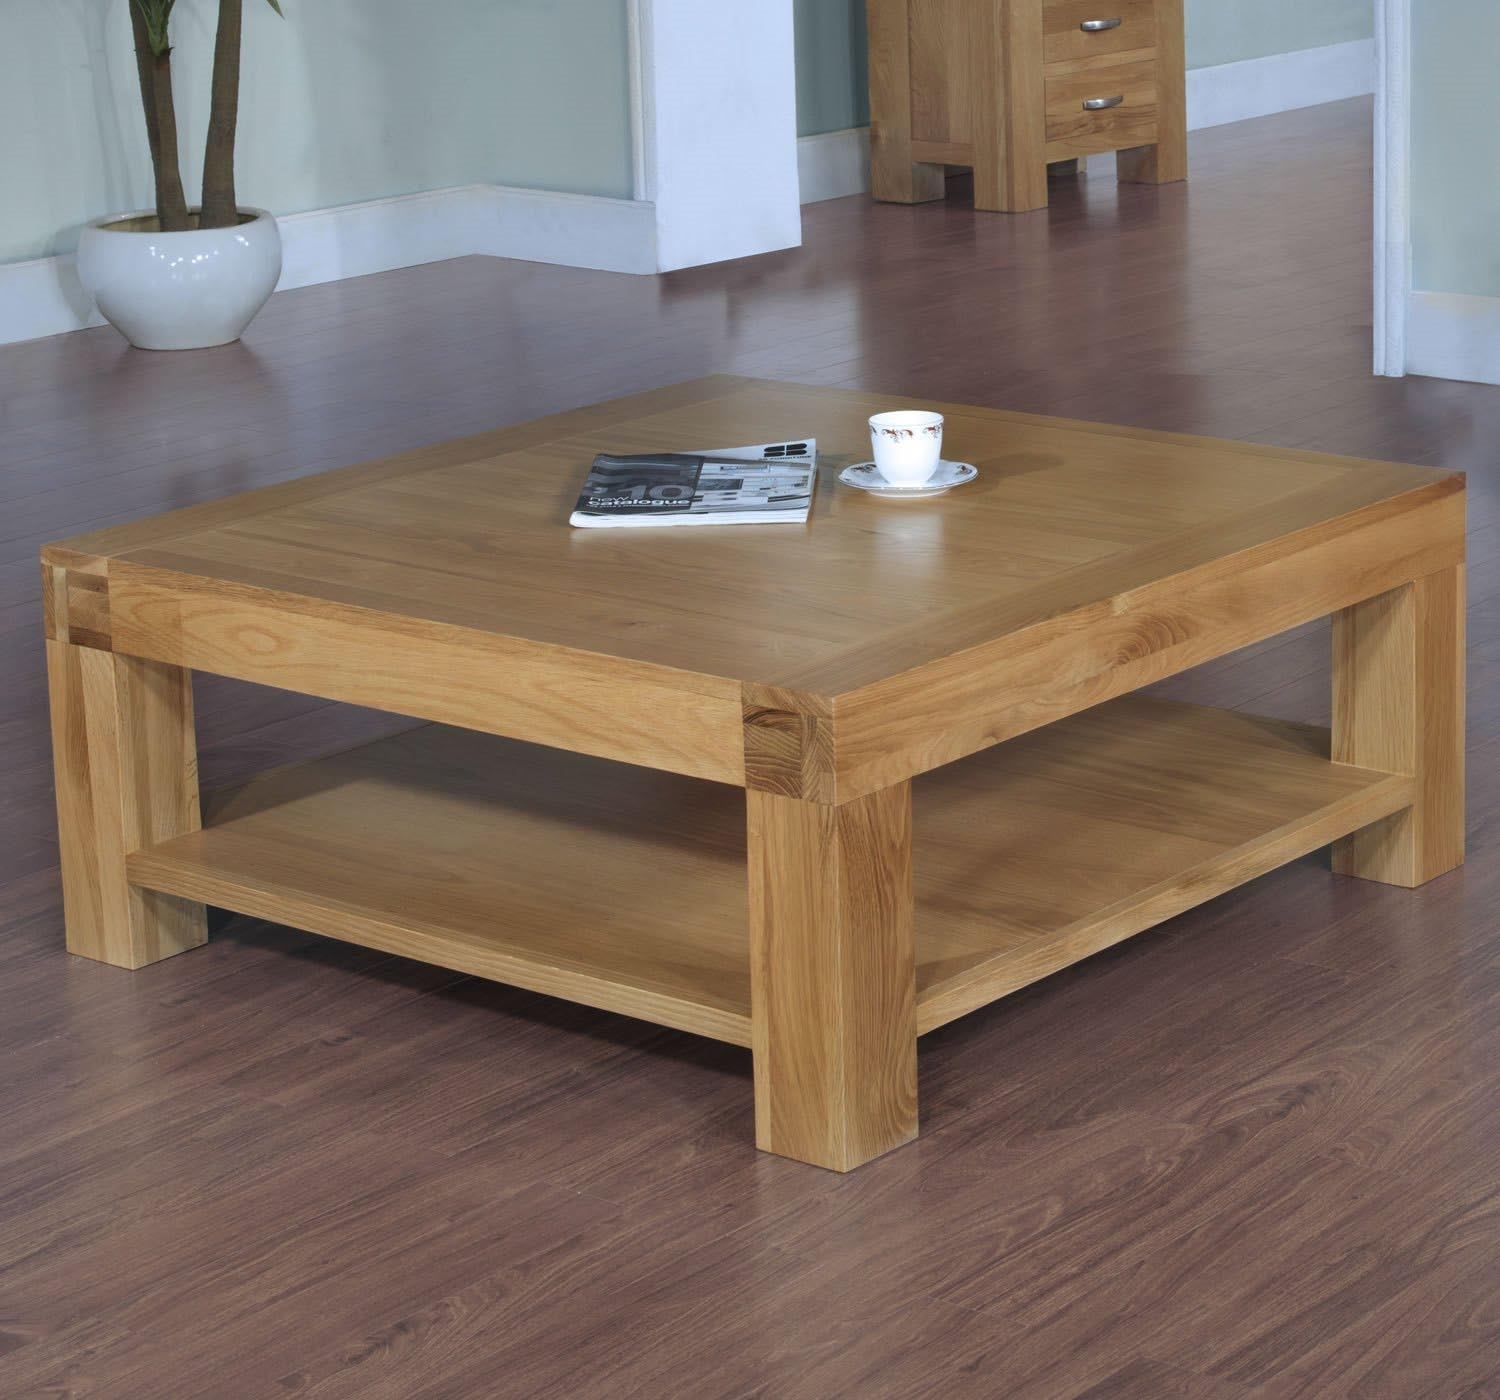 Two Small Tables Instead Of Coffee Table